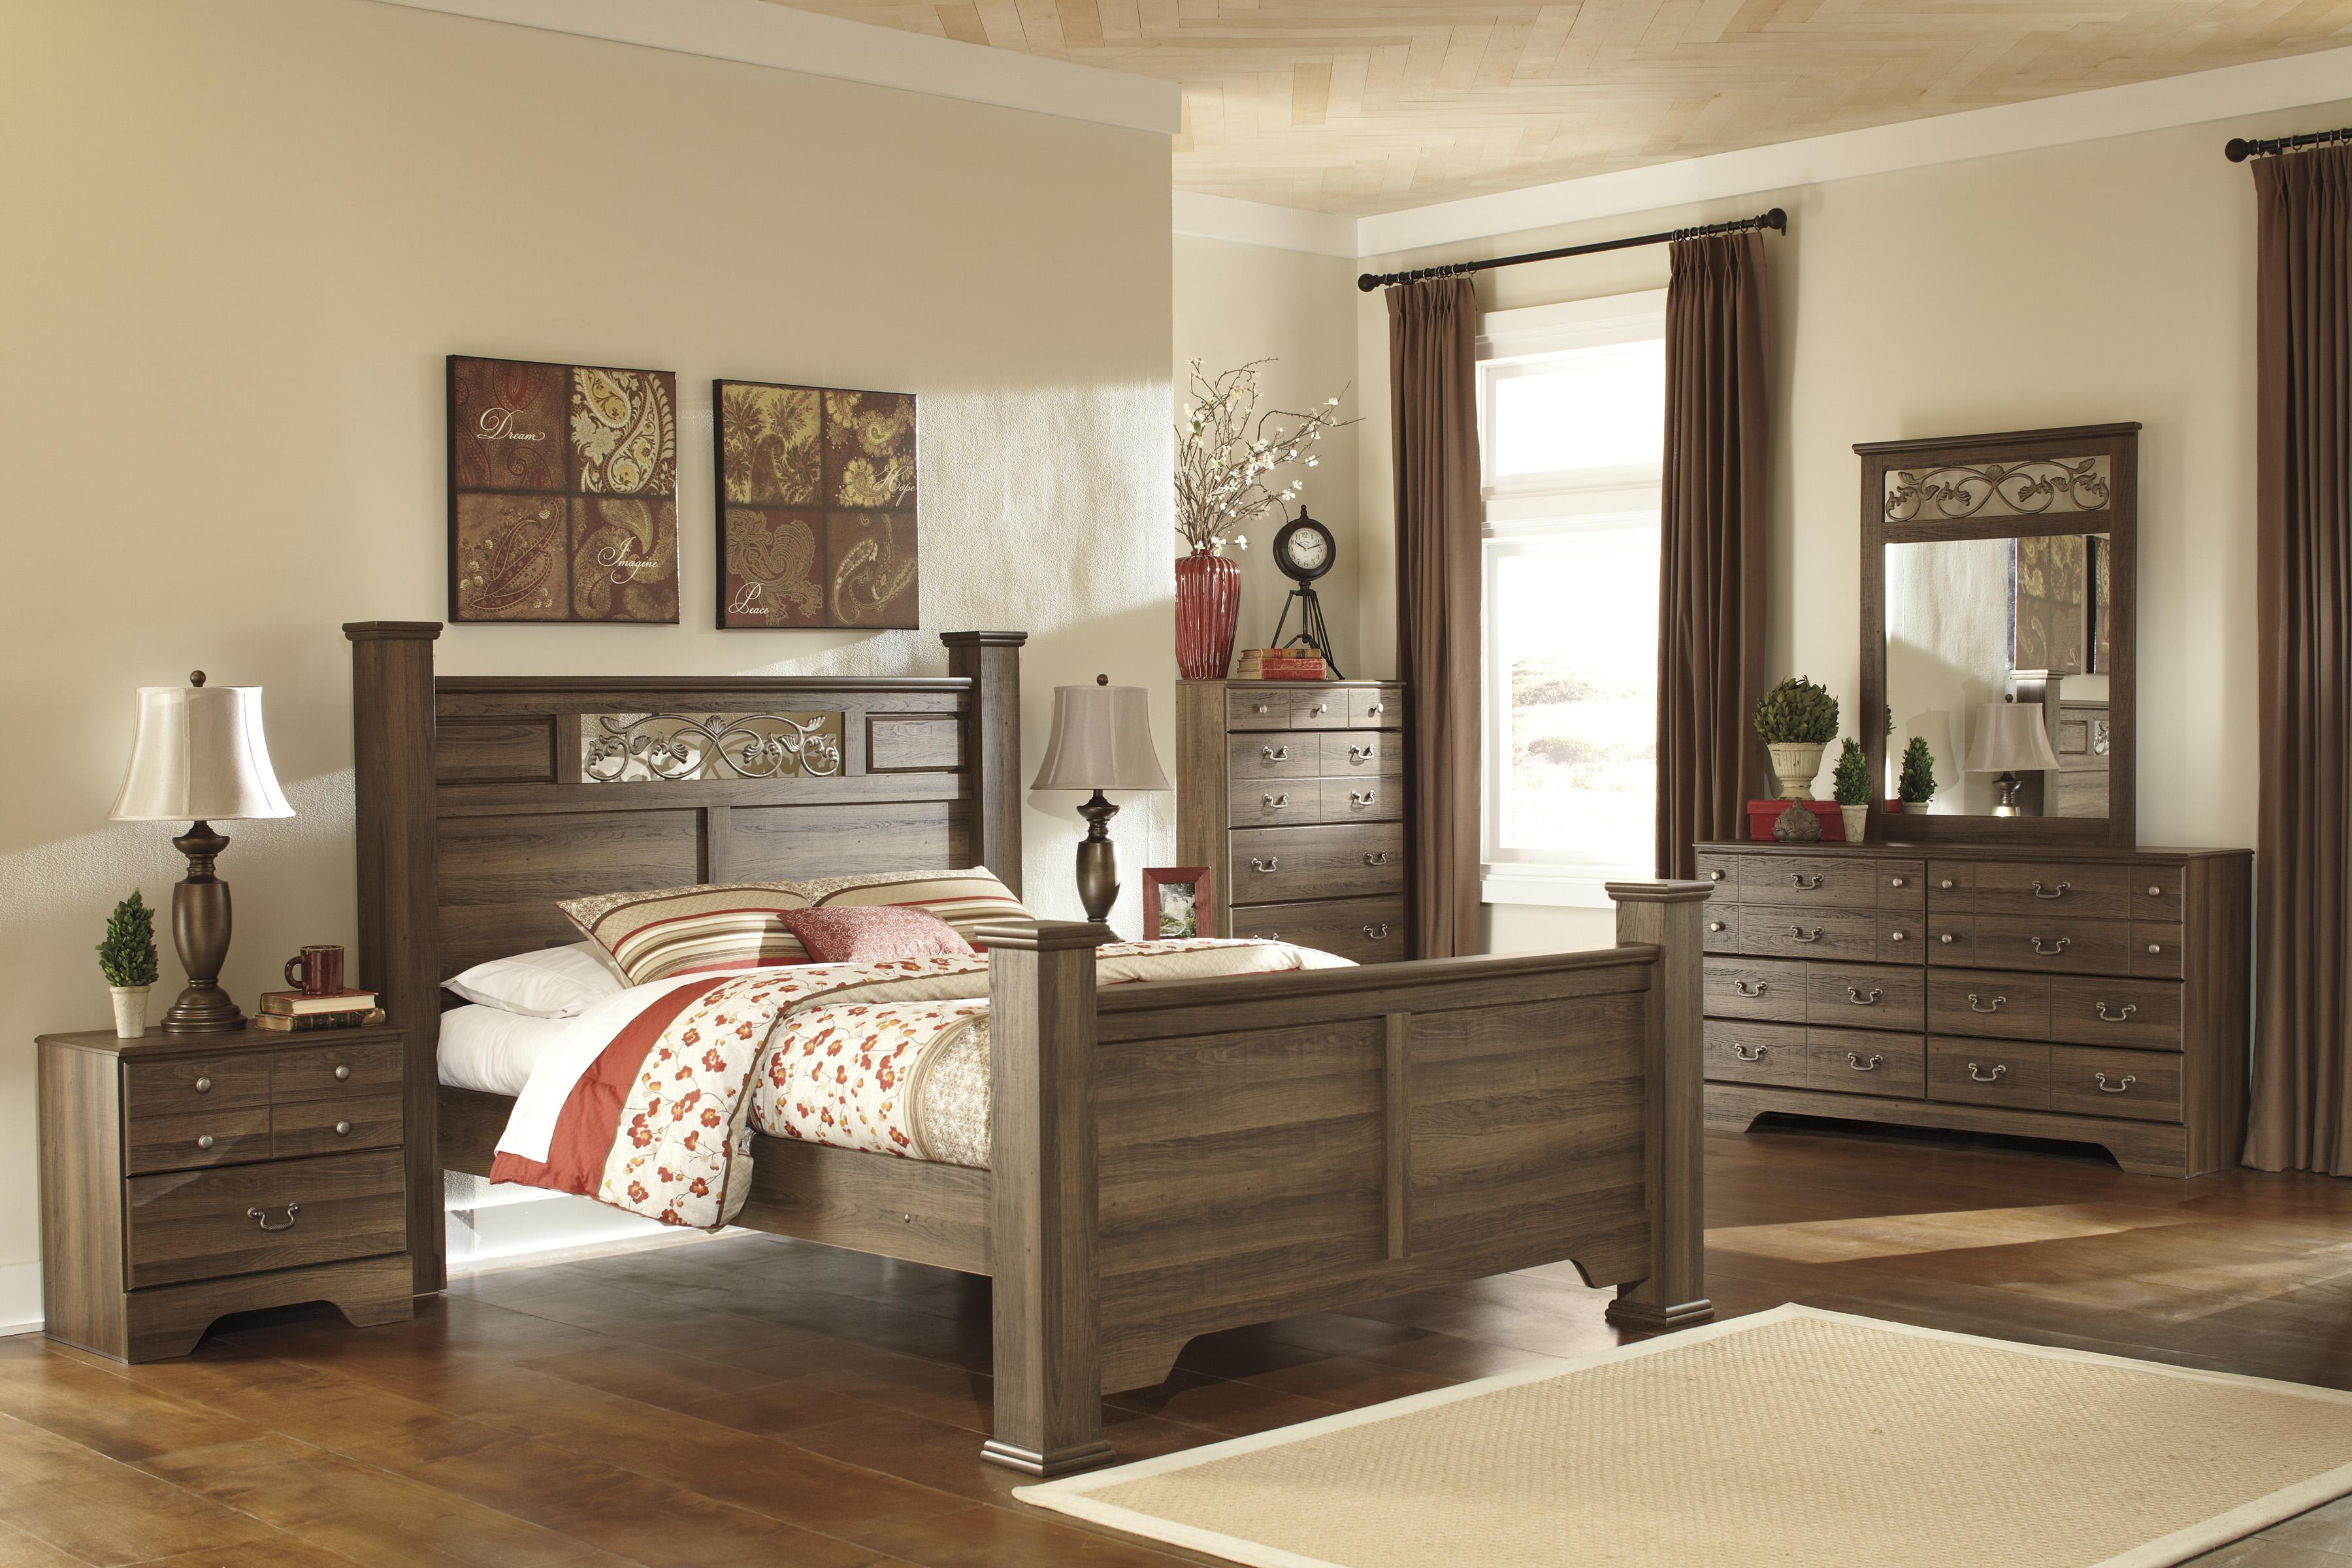 Signature design by ashley allymore queen poster bed with scrolled accents rifes home furniture panel beds